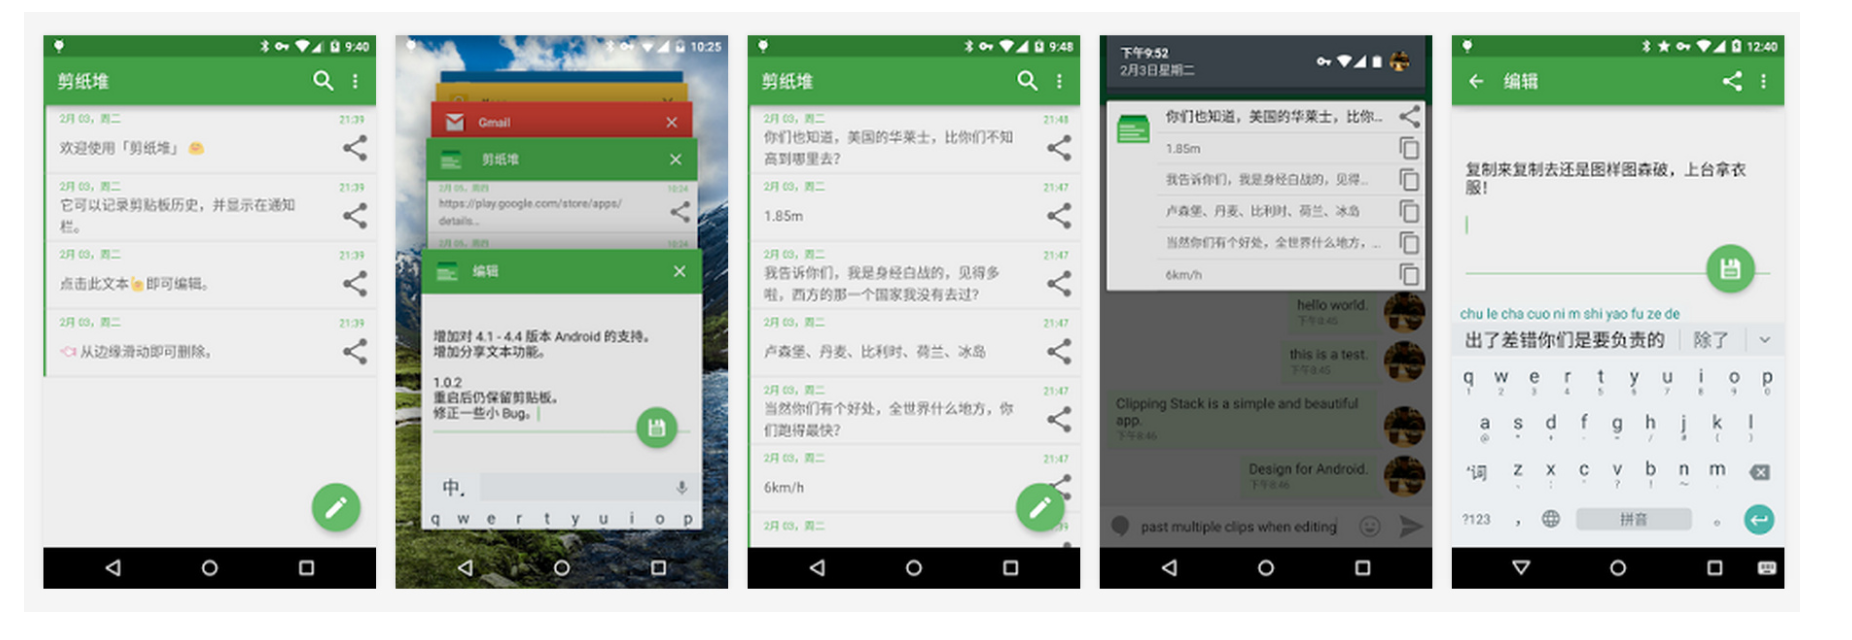 file manager android github